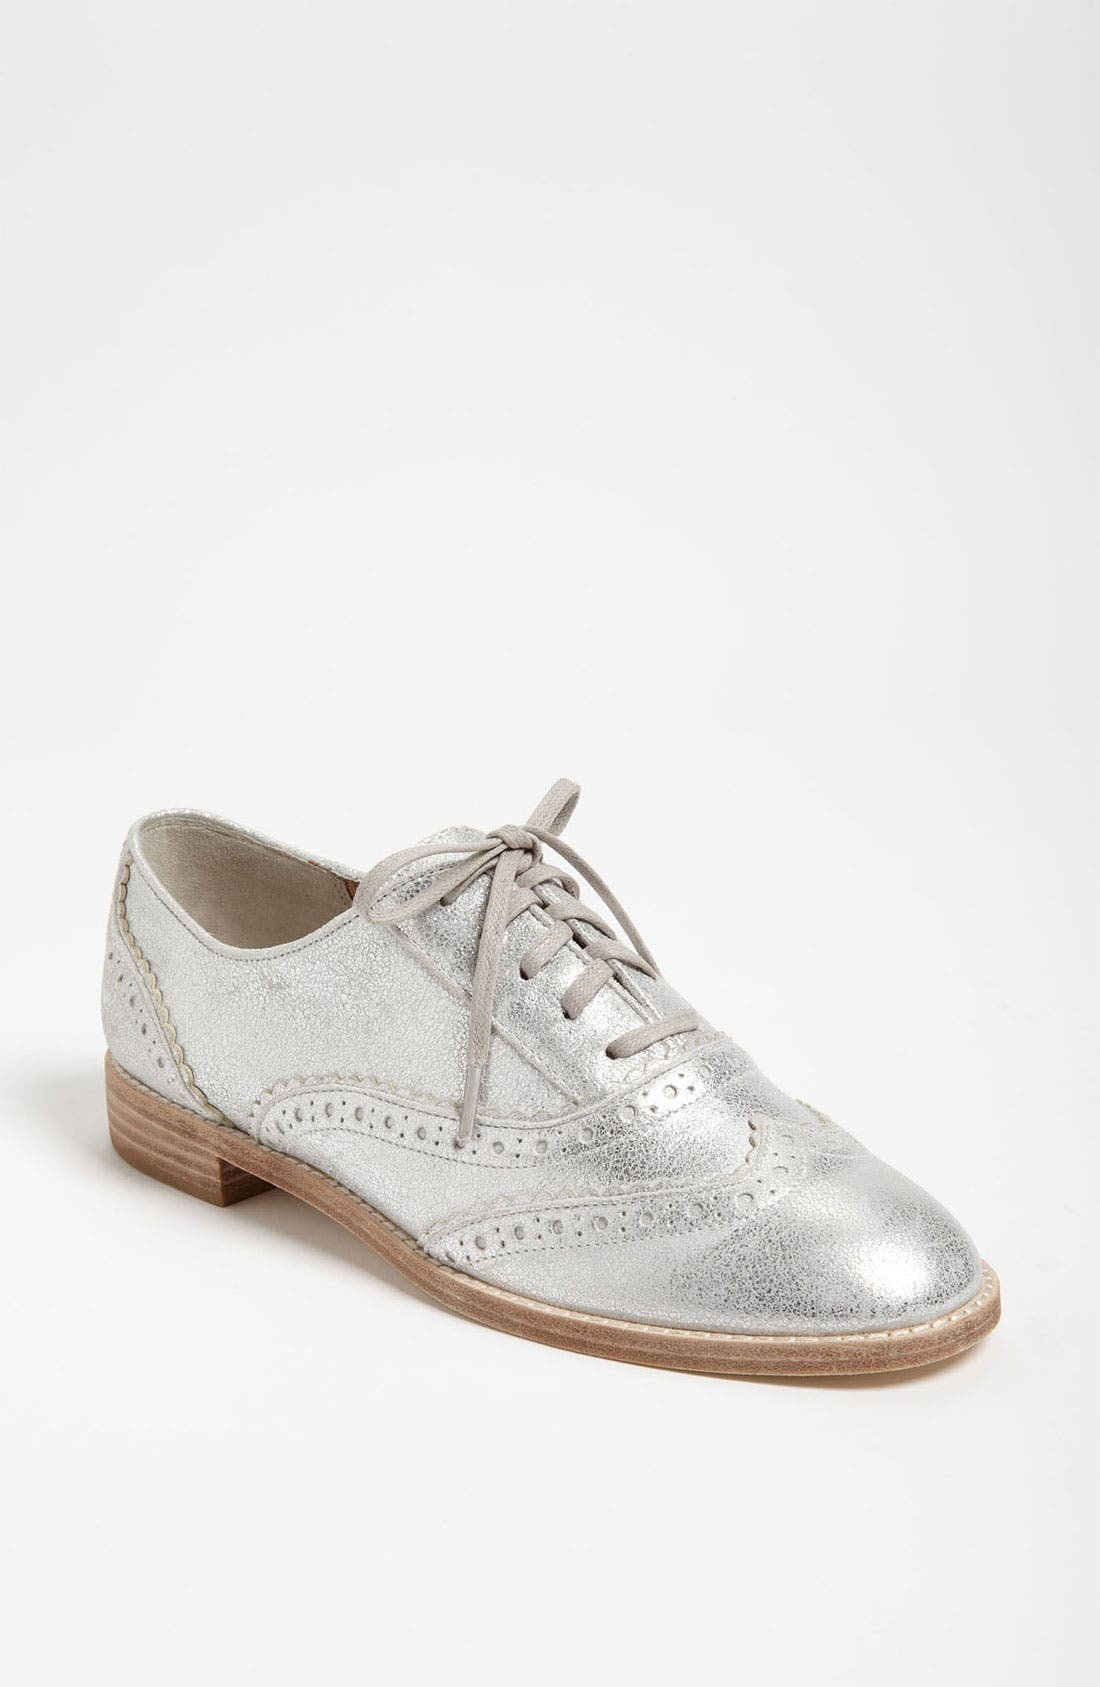 Main Image - Nina Originals 'Etta' Oxford